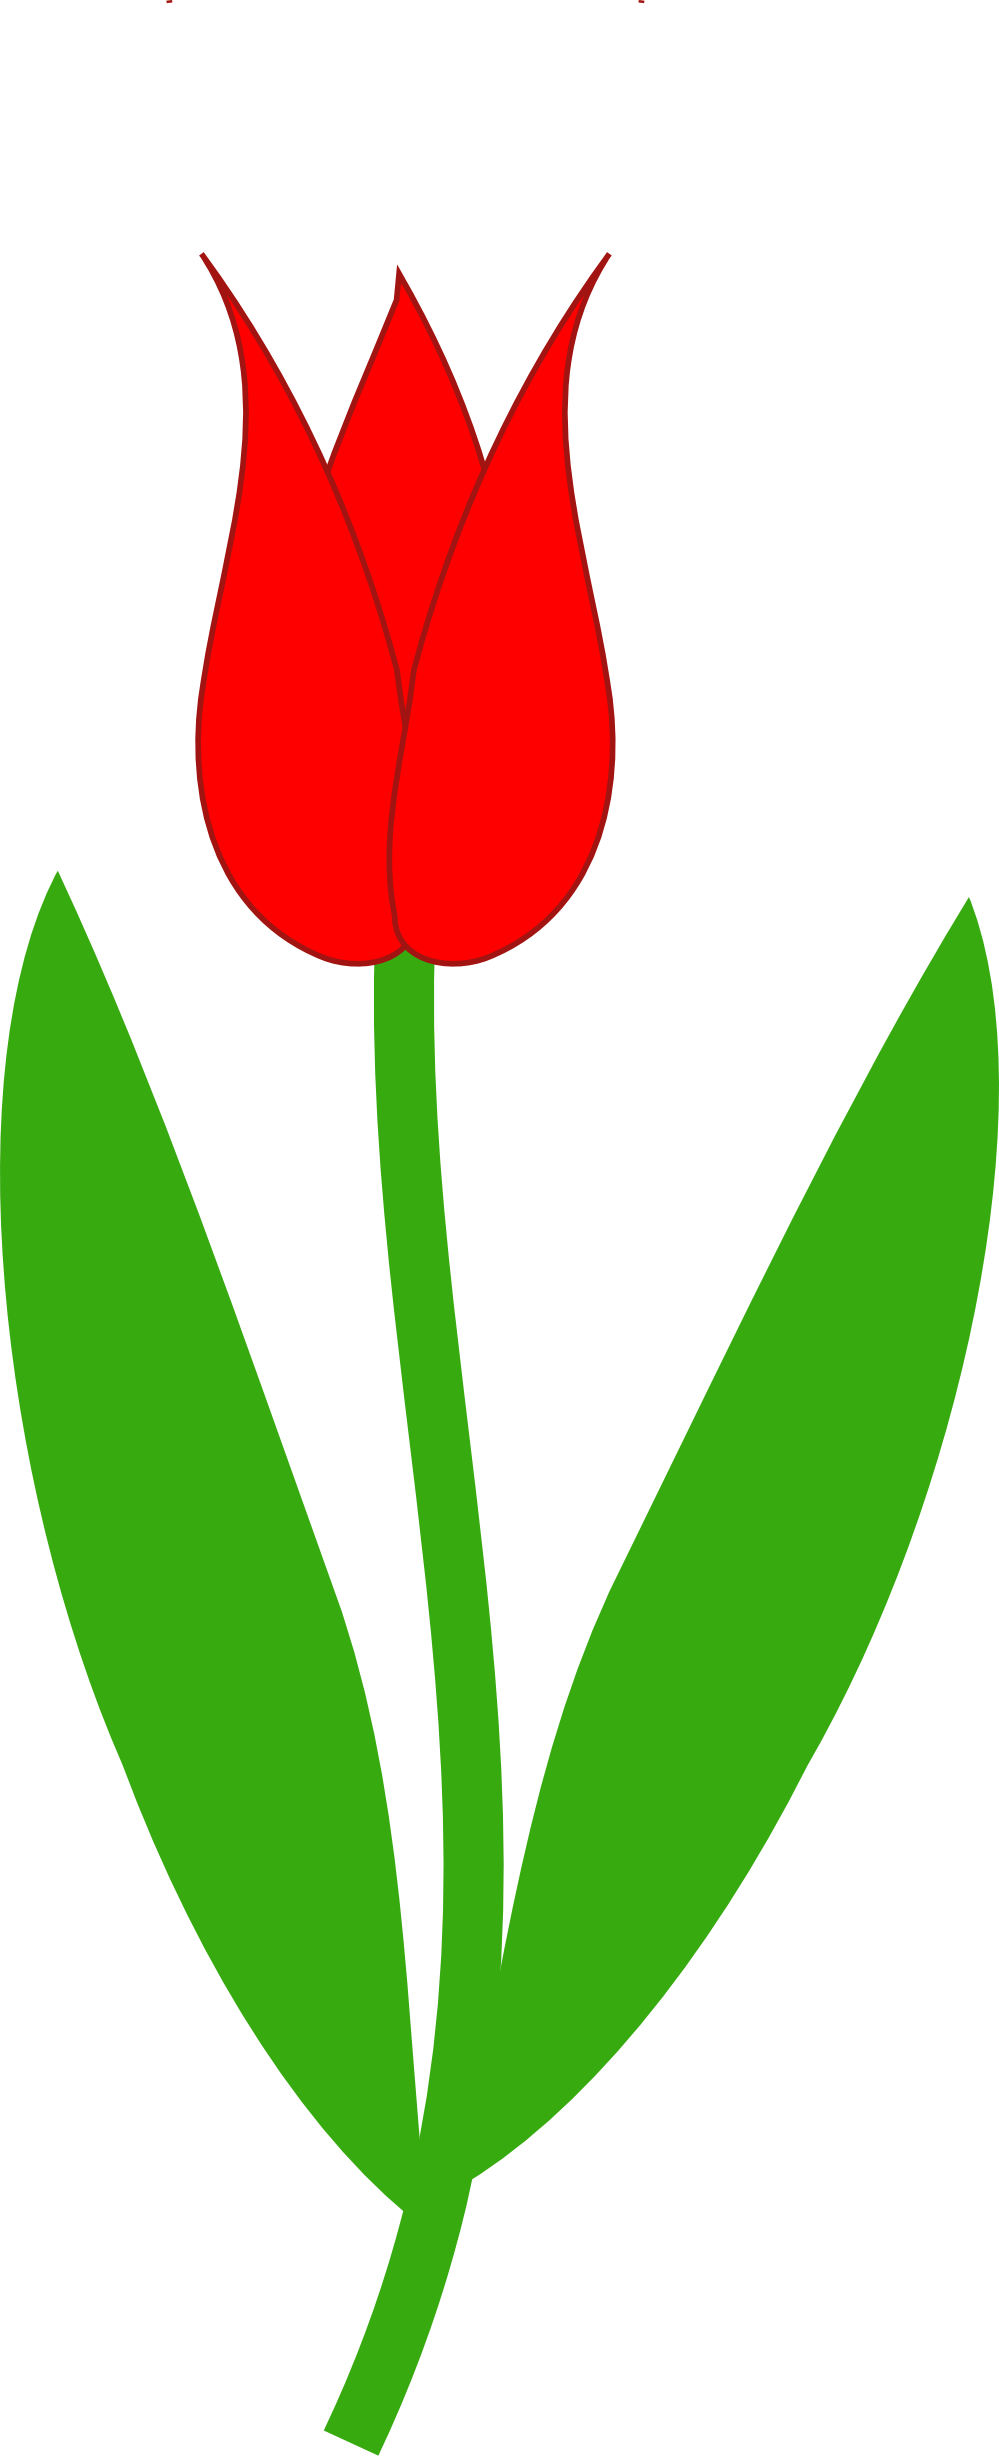 Tulip Clipart Red Tulip 999px Png 86 K-Tulip Clipart Red Tulip 999px Png 86 K-11